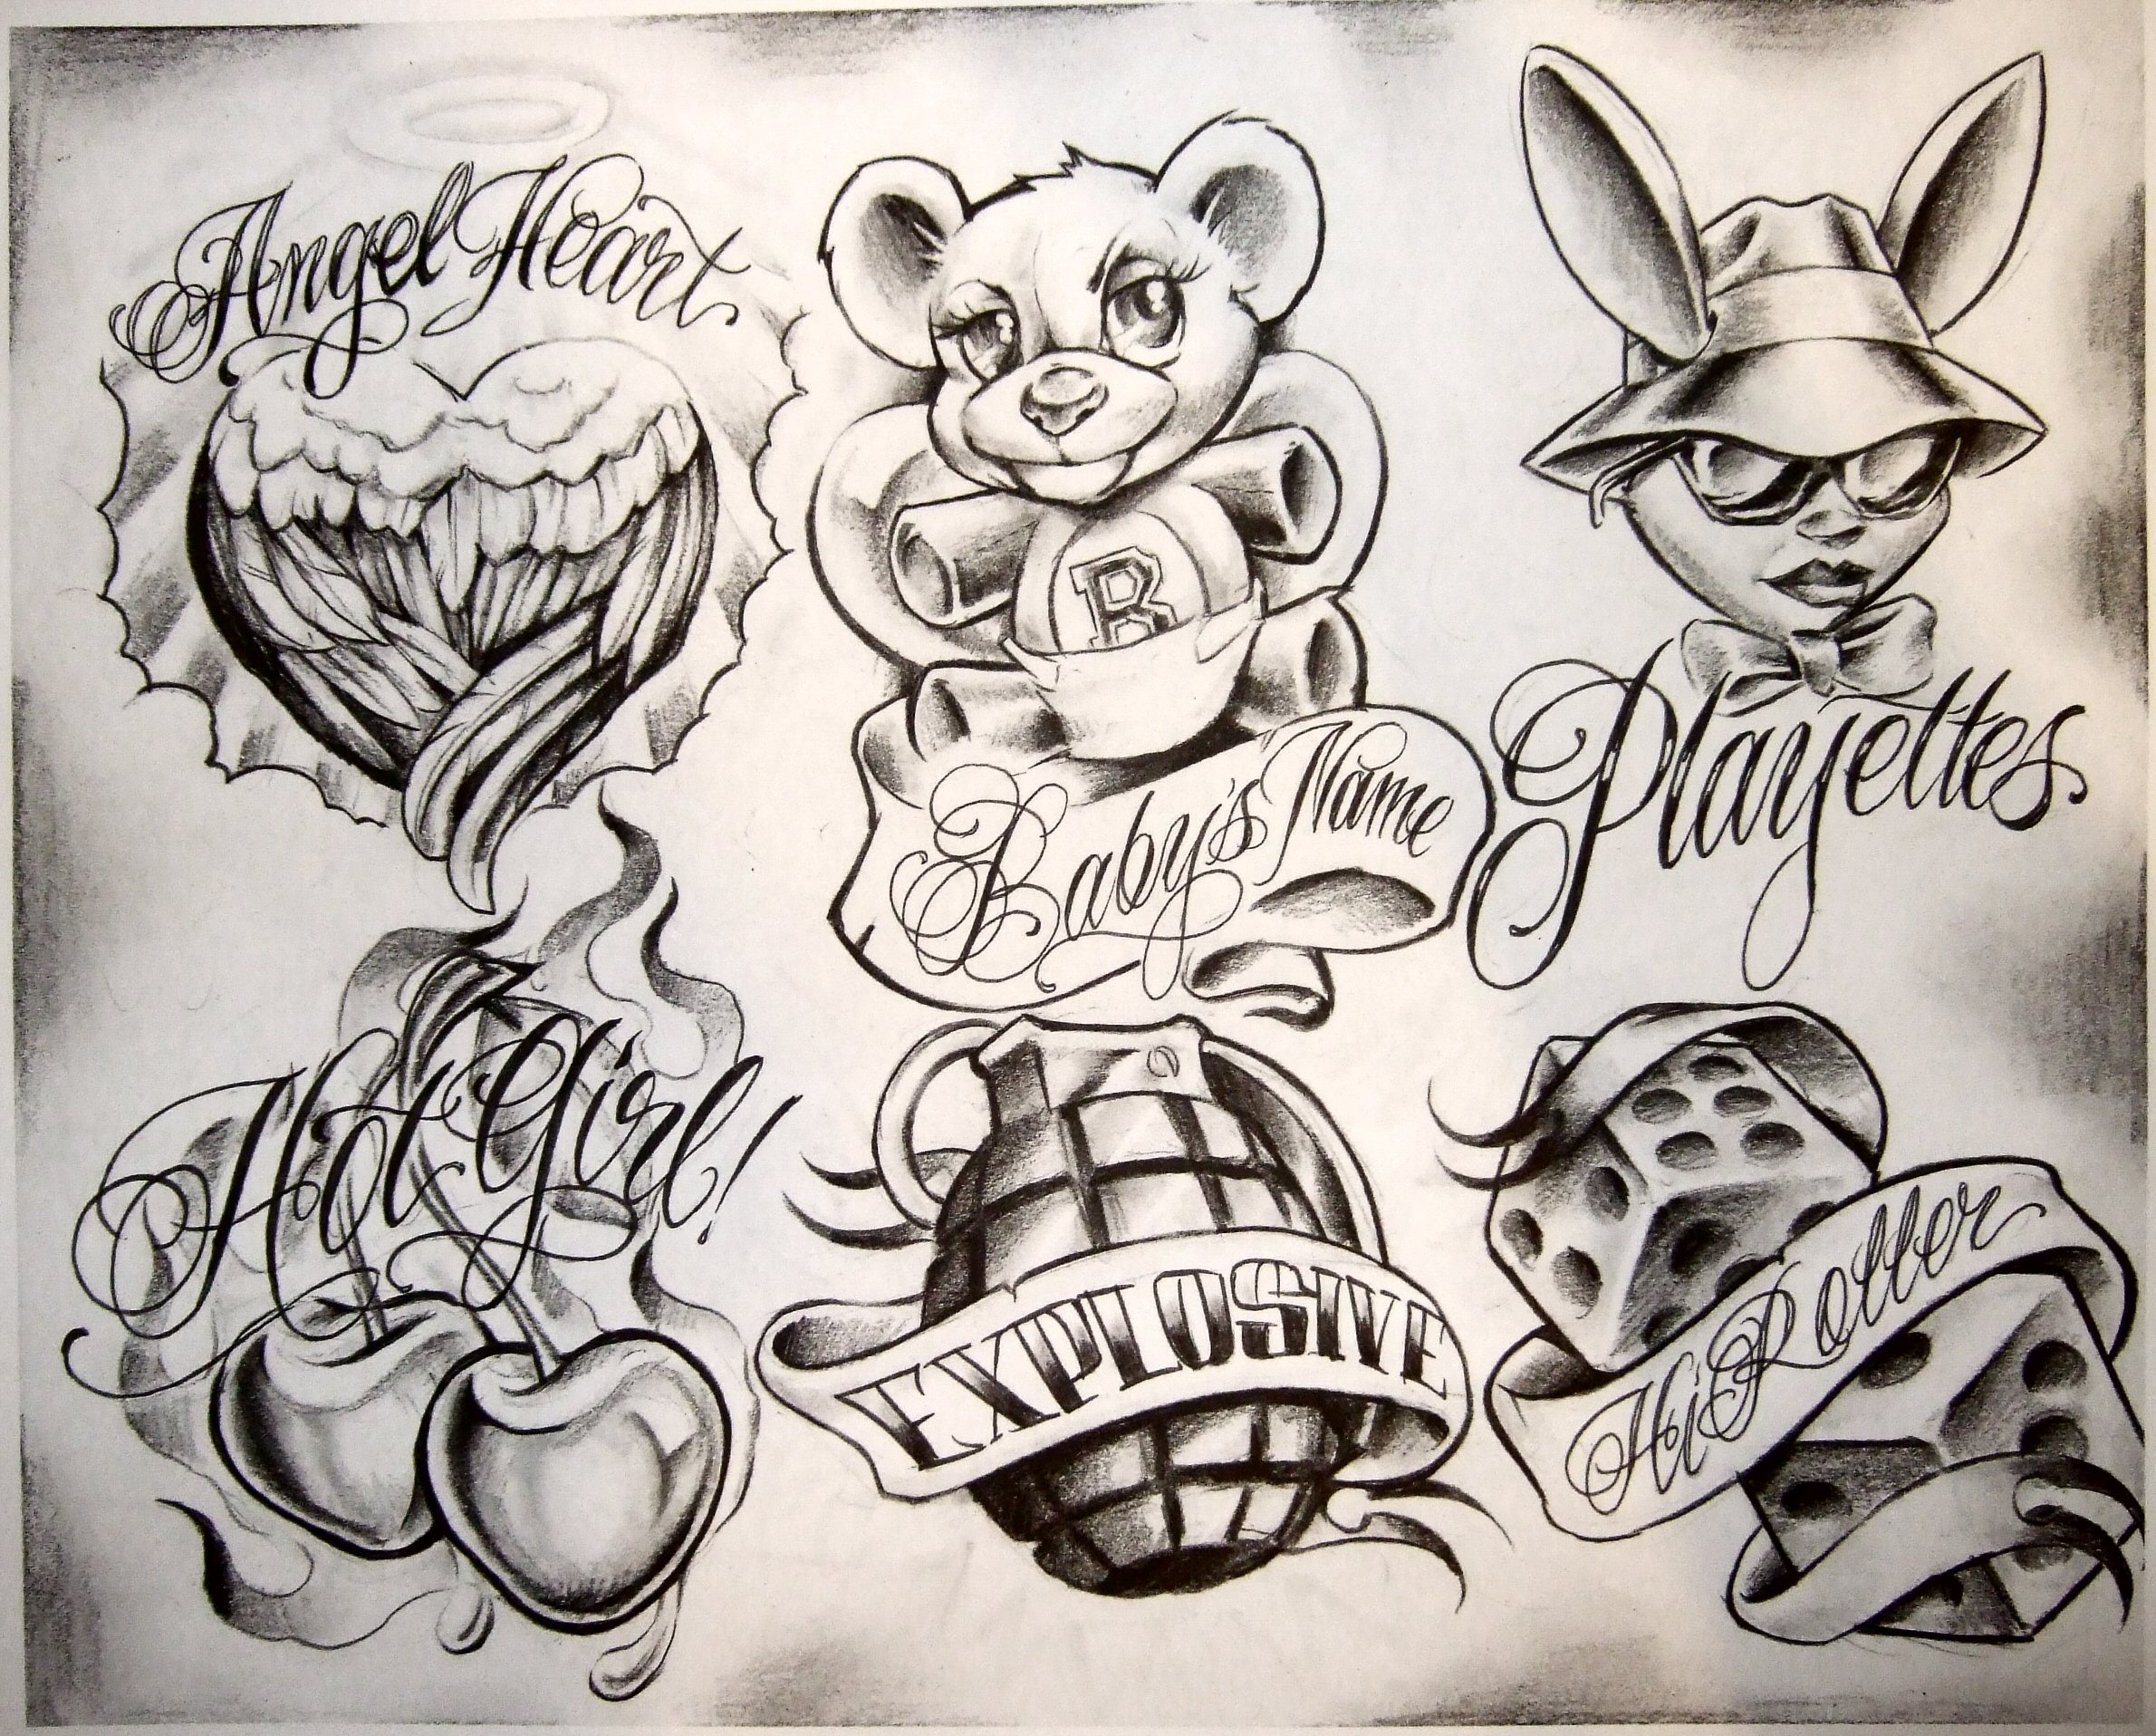 Tattoo Flash by Boog. Татуировки, зарисовки (191